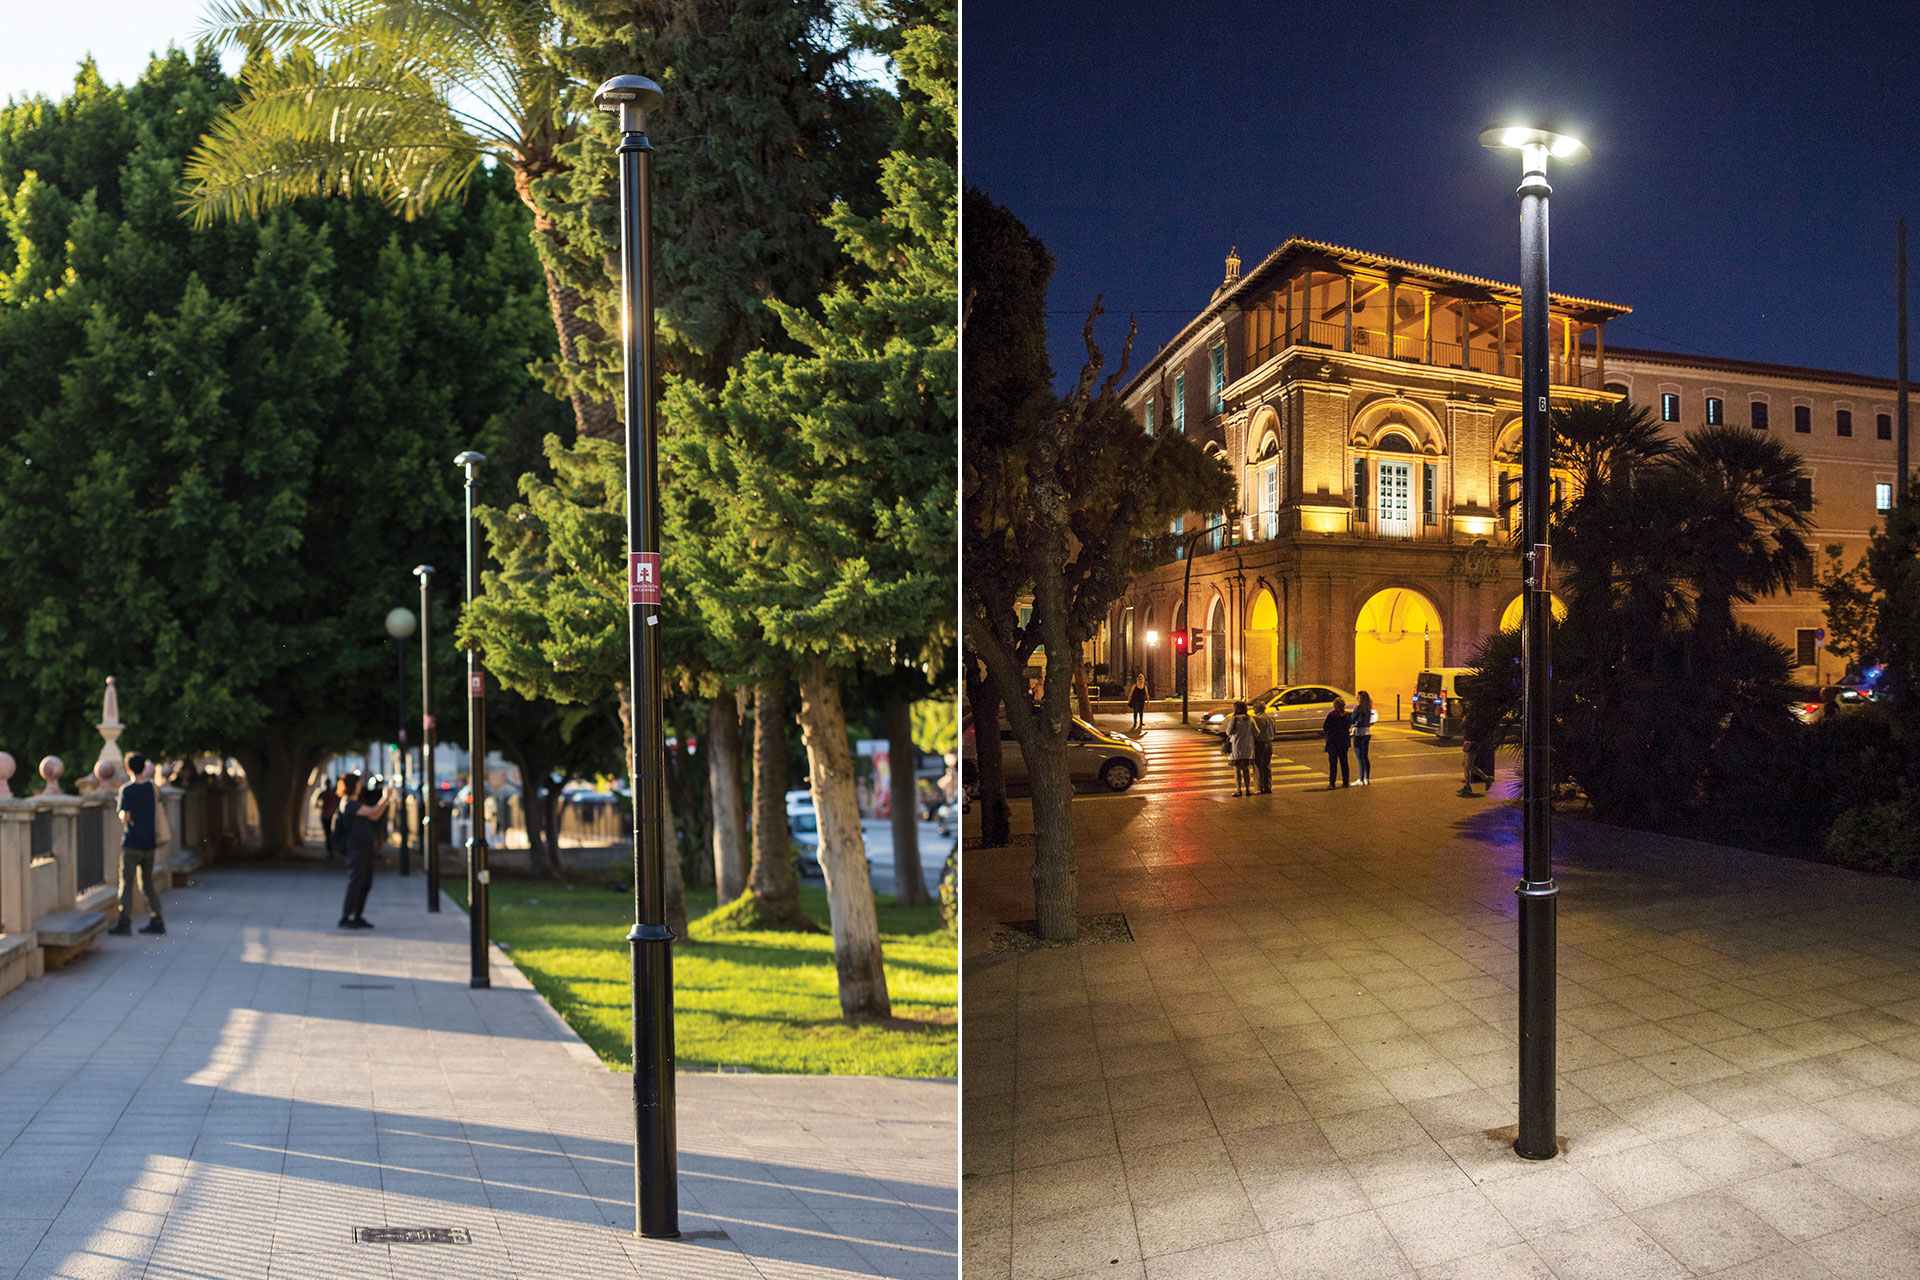 The cost-effective Voldue has improved the nocturnal vibe of Paseo del Teniente Flomesta in Murcia